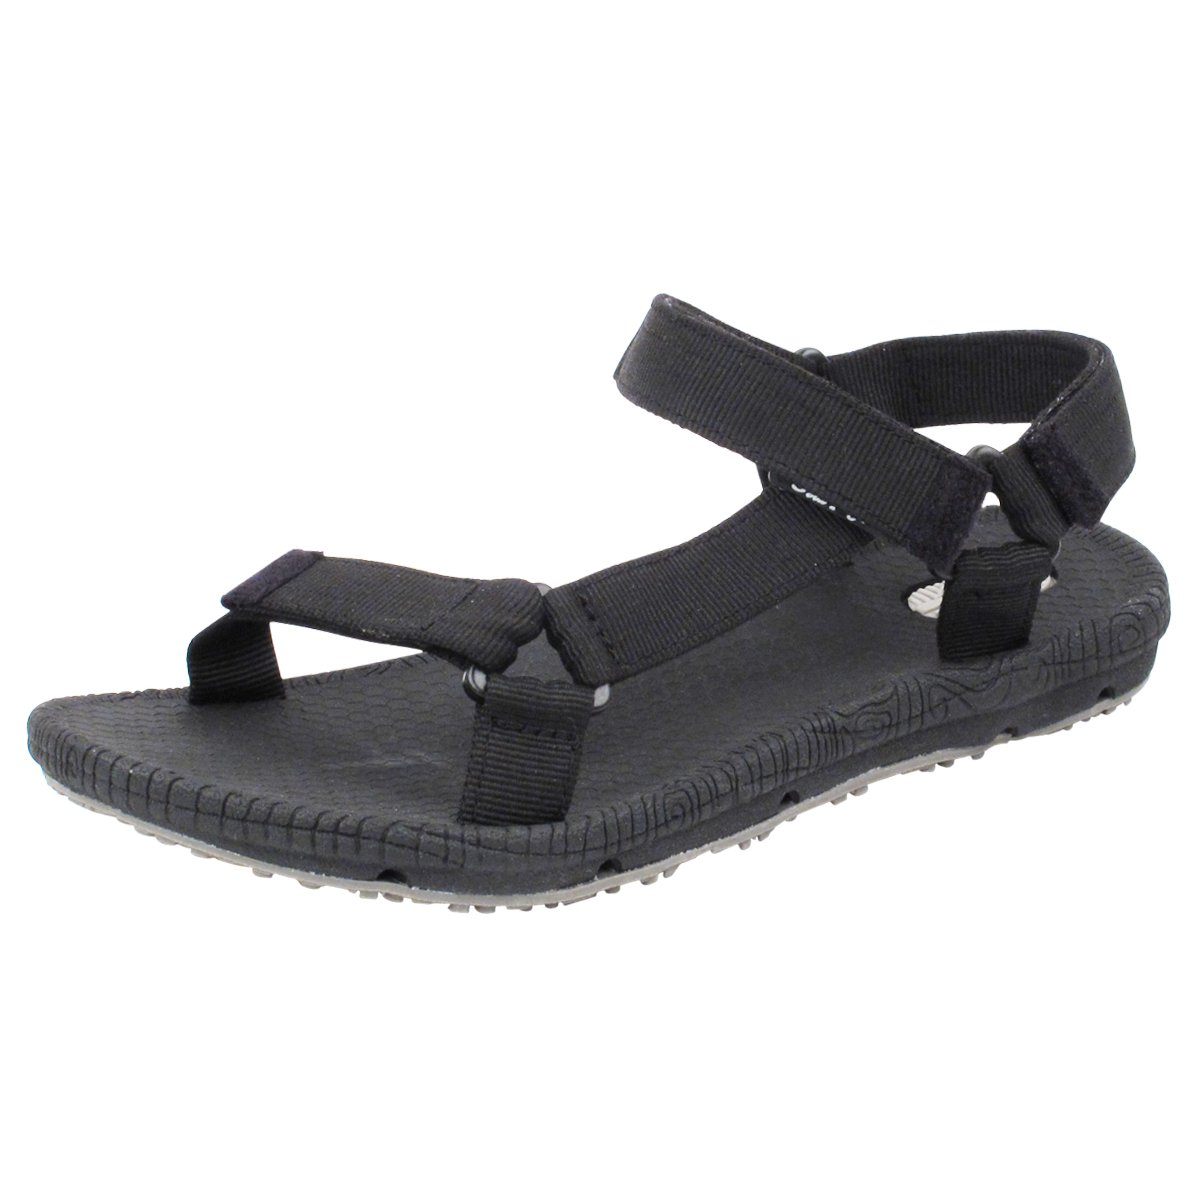 Gold Pigeon Shoes GP5931 Unisex Outdoor/Water Sandals: Prime-5931 Black, EU41